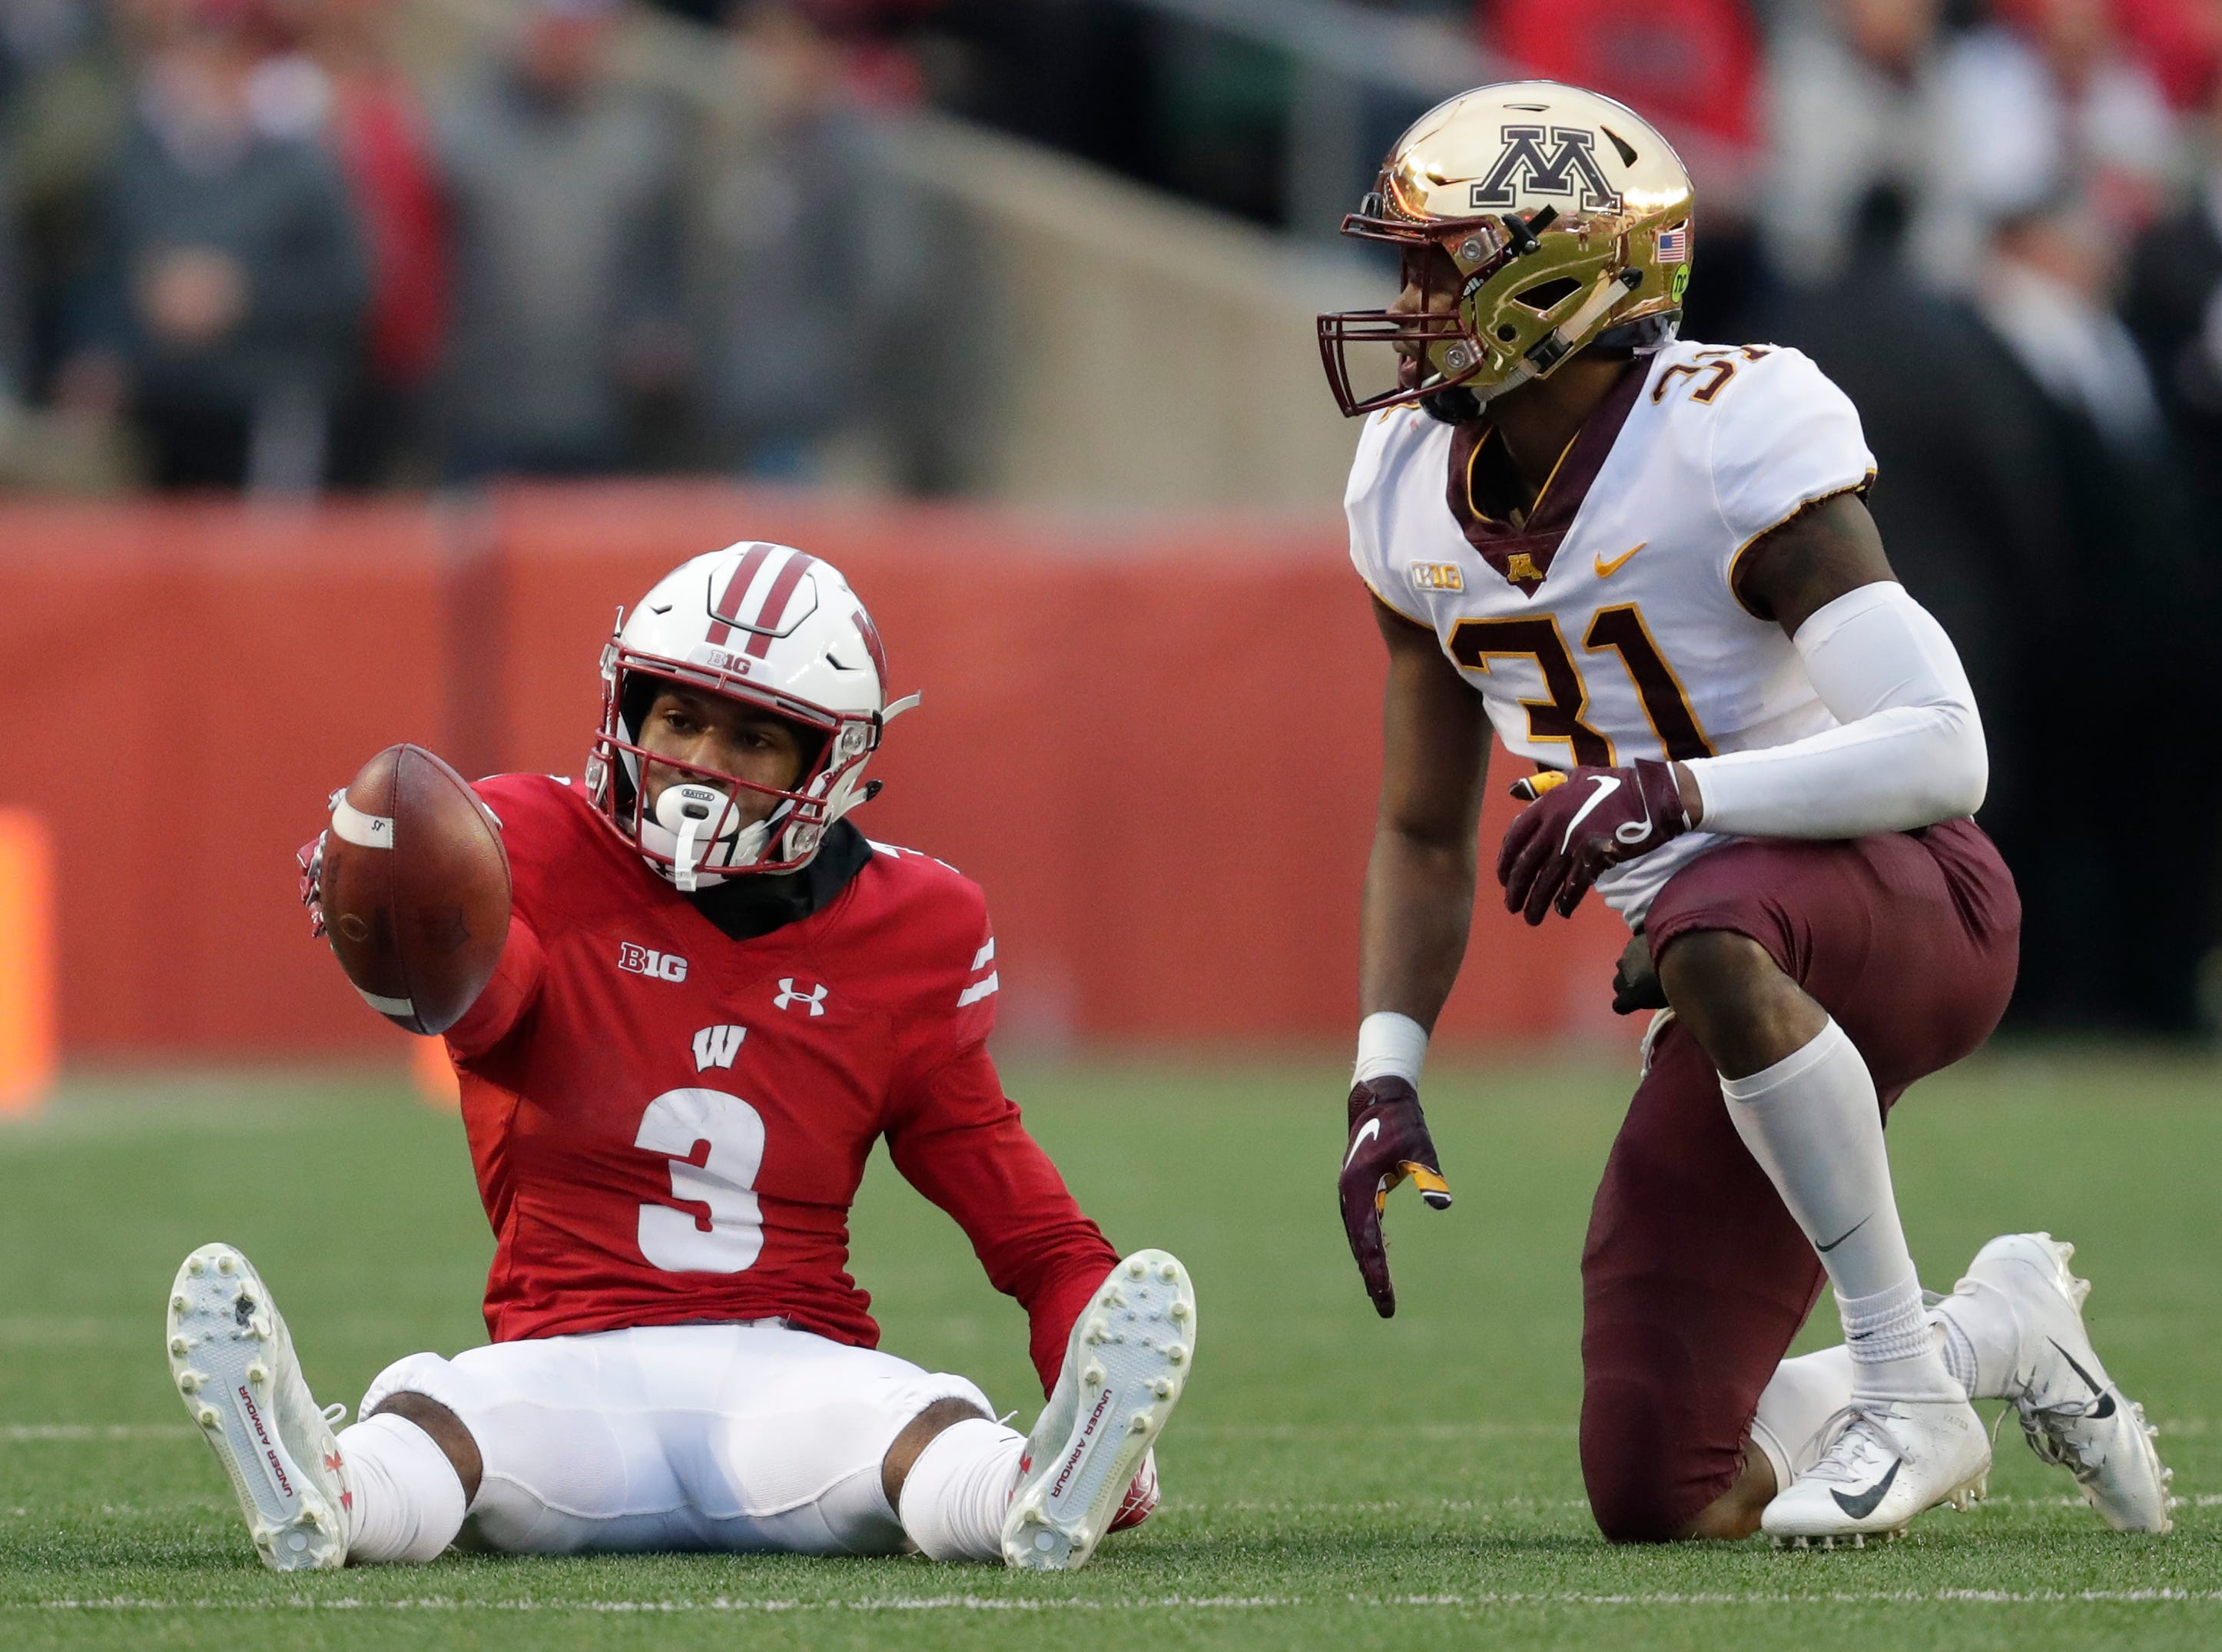 Wisconsin wide receiver Kendric Pryor (3) signals for a first down after making a reception against Minnesota defensive back Kiondre Thomas to end the first quarter Saturday, November 24, 2018, at Camp Randall Stadium in Madison, Wis. Dan Powers/USA TODAY NETWORK-Wisconsin